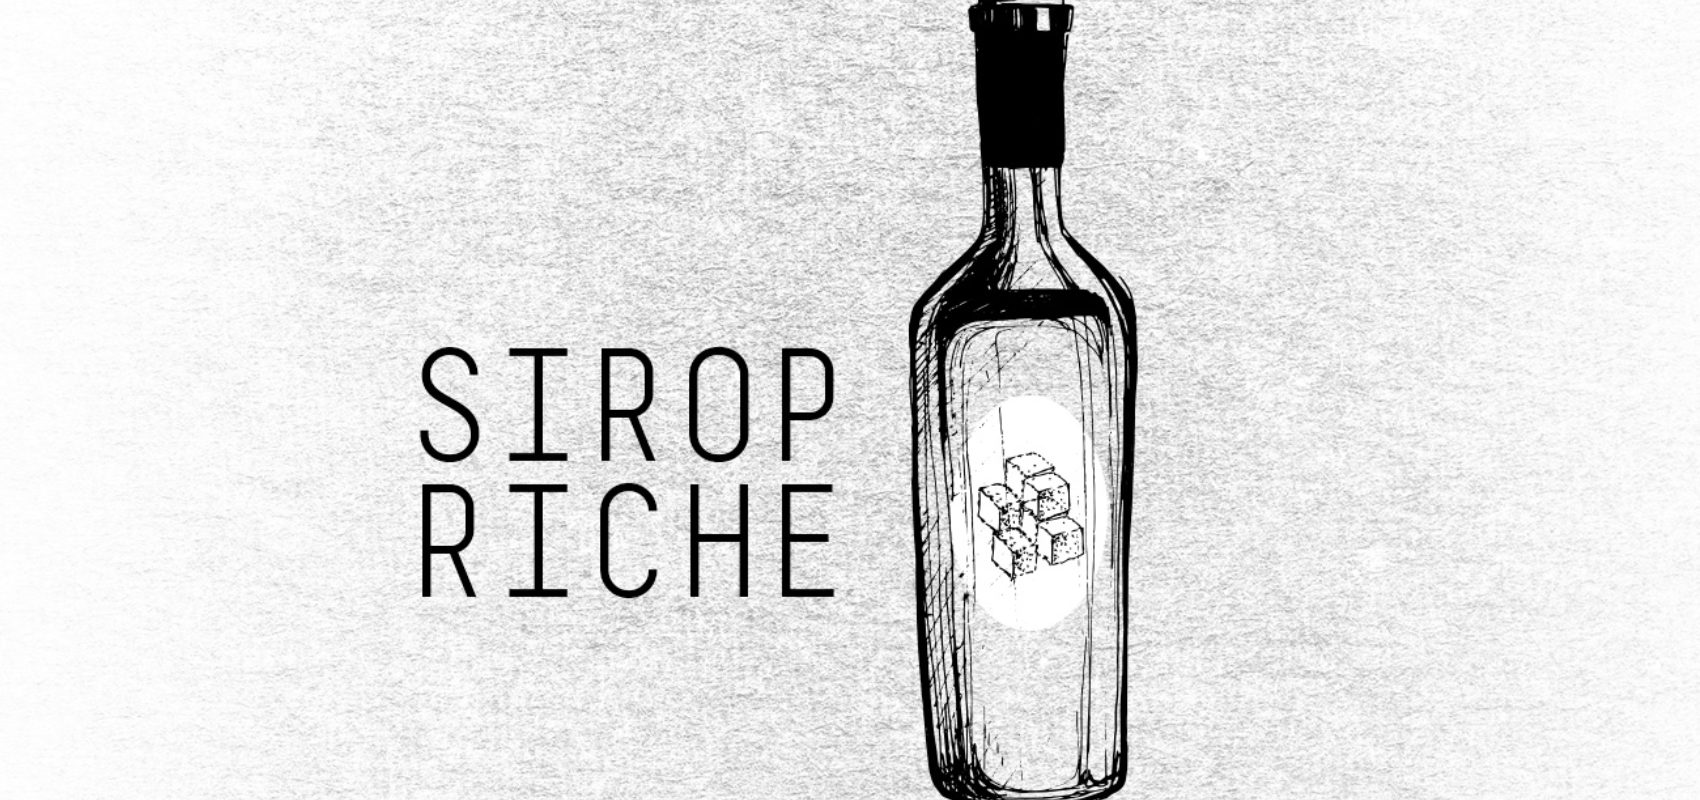 Sirop simple riche